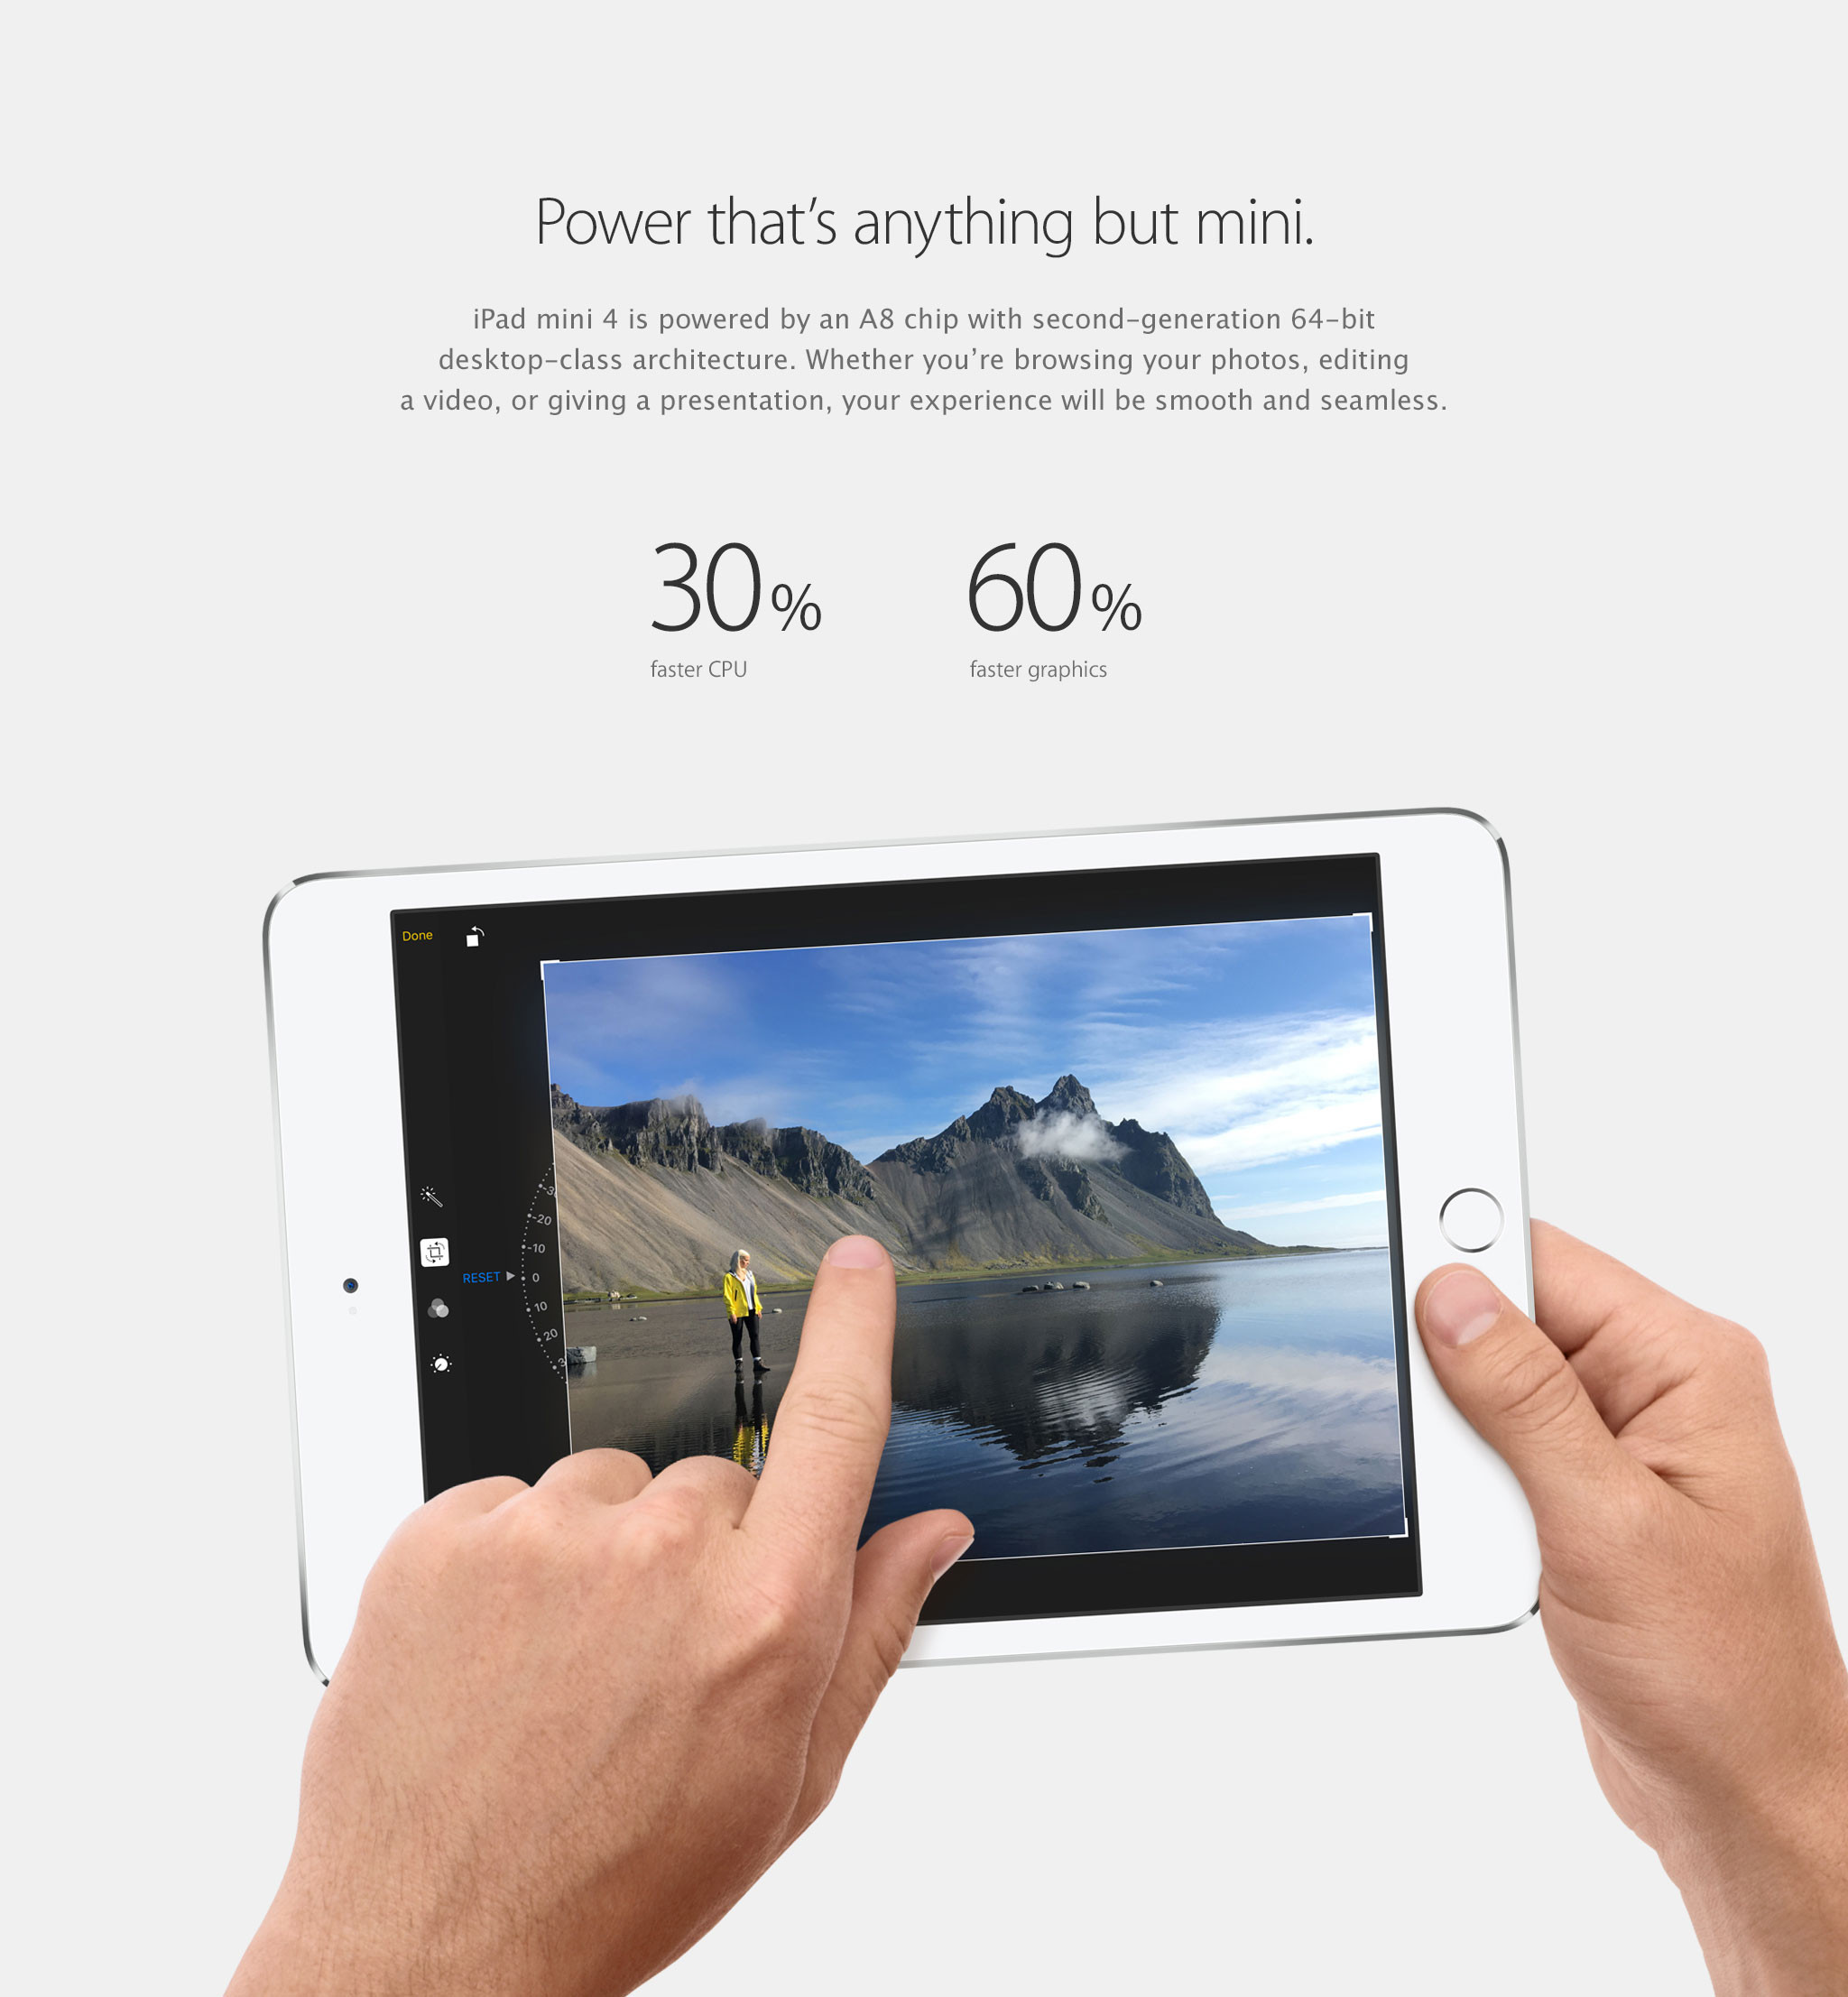 Power that's anything but mini. iPad mini 4 is powered by an A8 chip with second-generation 64-bit desktop-class architecture. Whether you're browsing your photos, editing a video, or giving a presentation, your experience will be smooth and seamless. 30% faster CPU, 60% faster graphics.